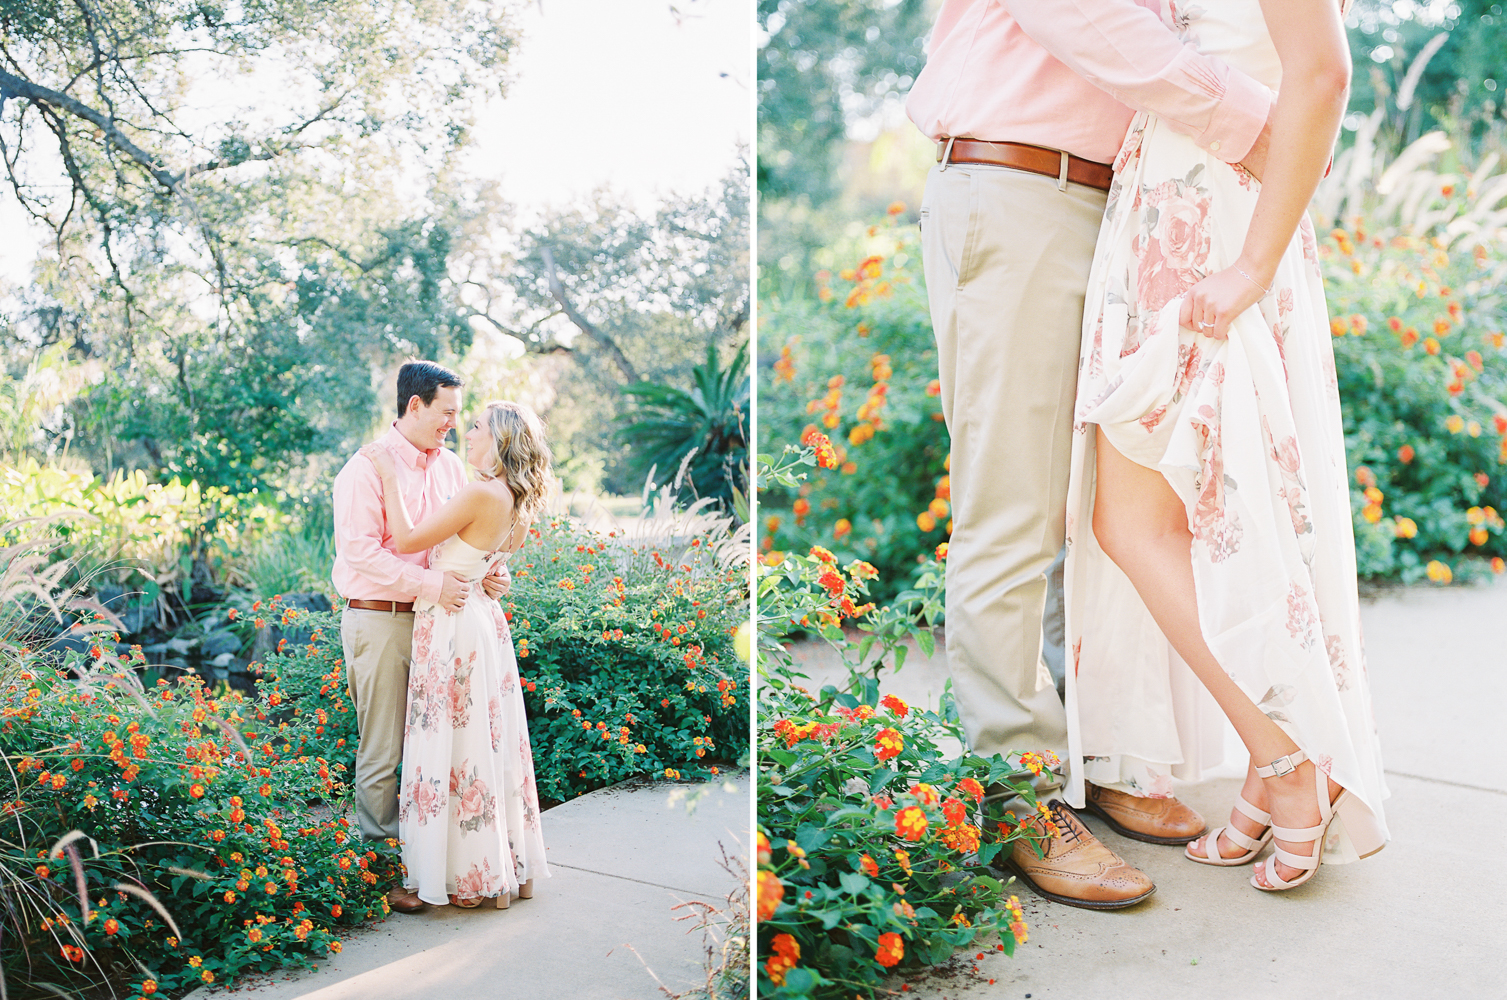 AKP_LA_Arboretum_Engagement_Los_Angeles_Film_Wedding_Photographer-3.jpg